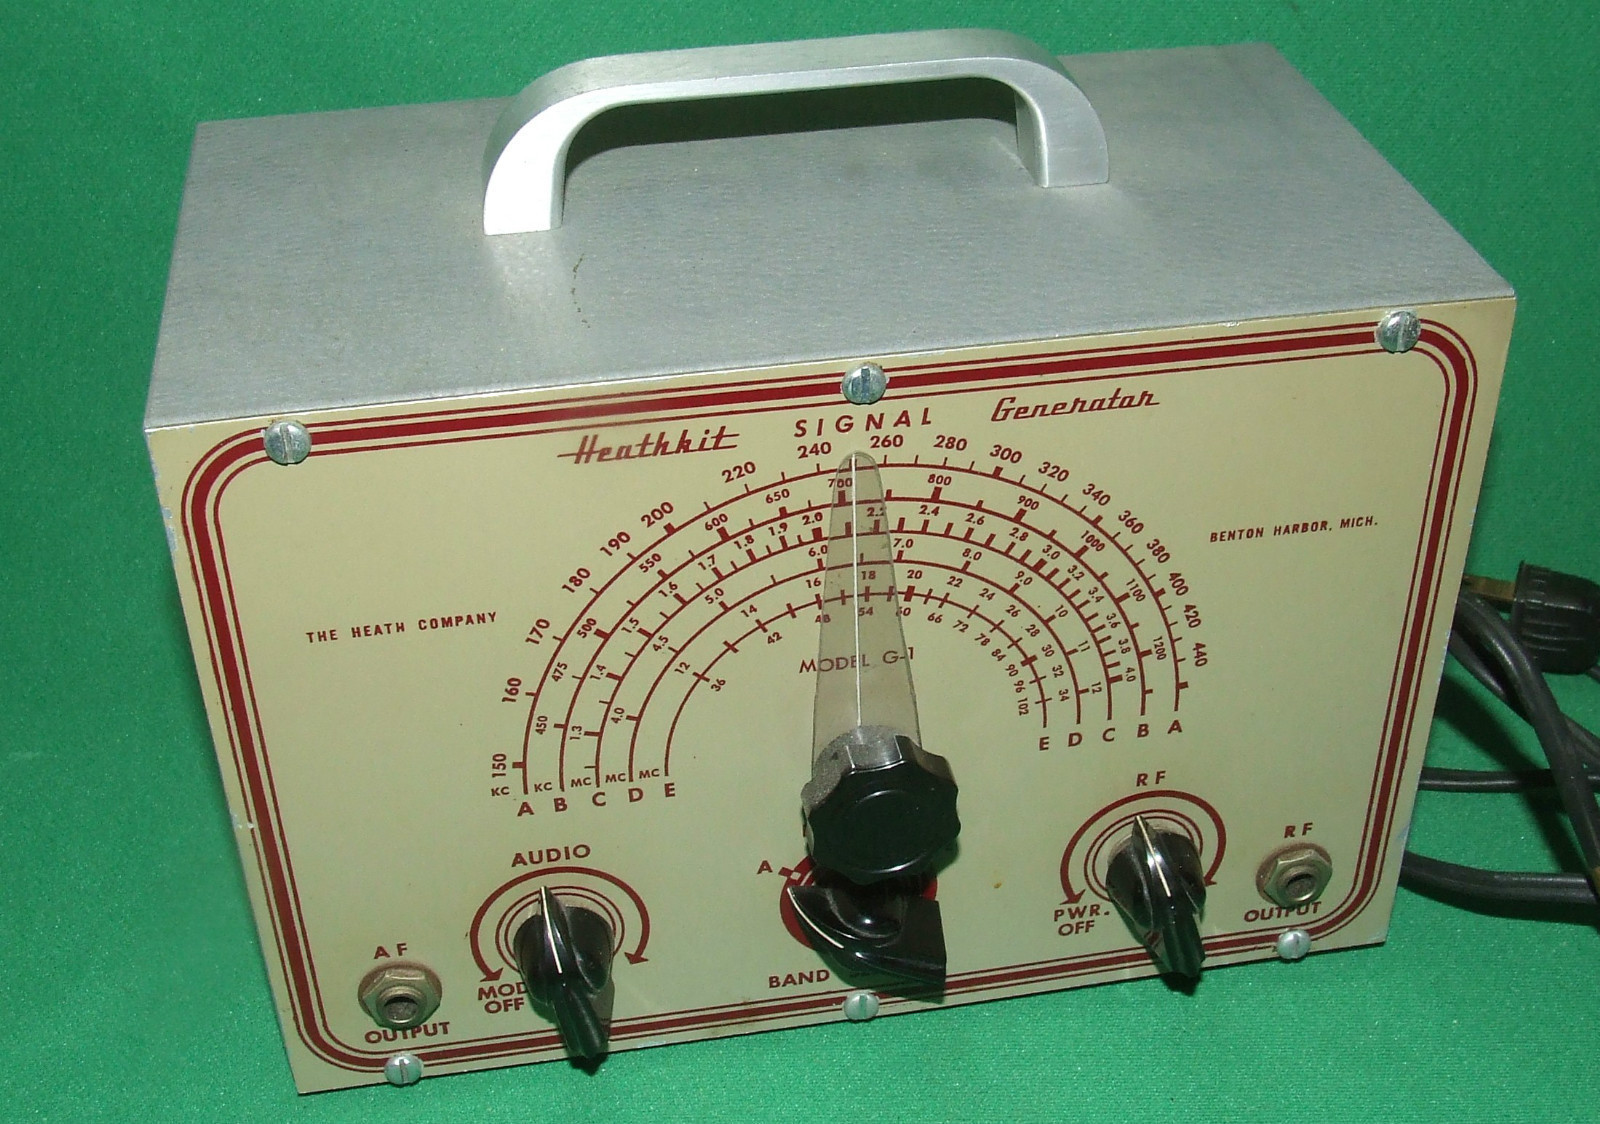 Heathkit Signal Generator : Heathkit g signal generator the old tube radio archives